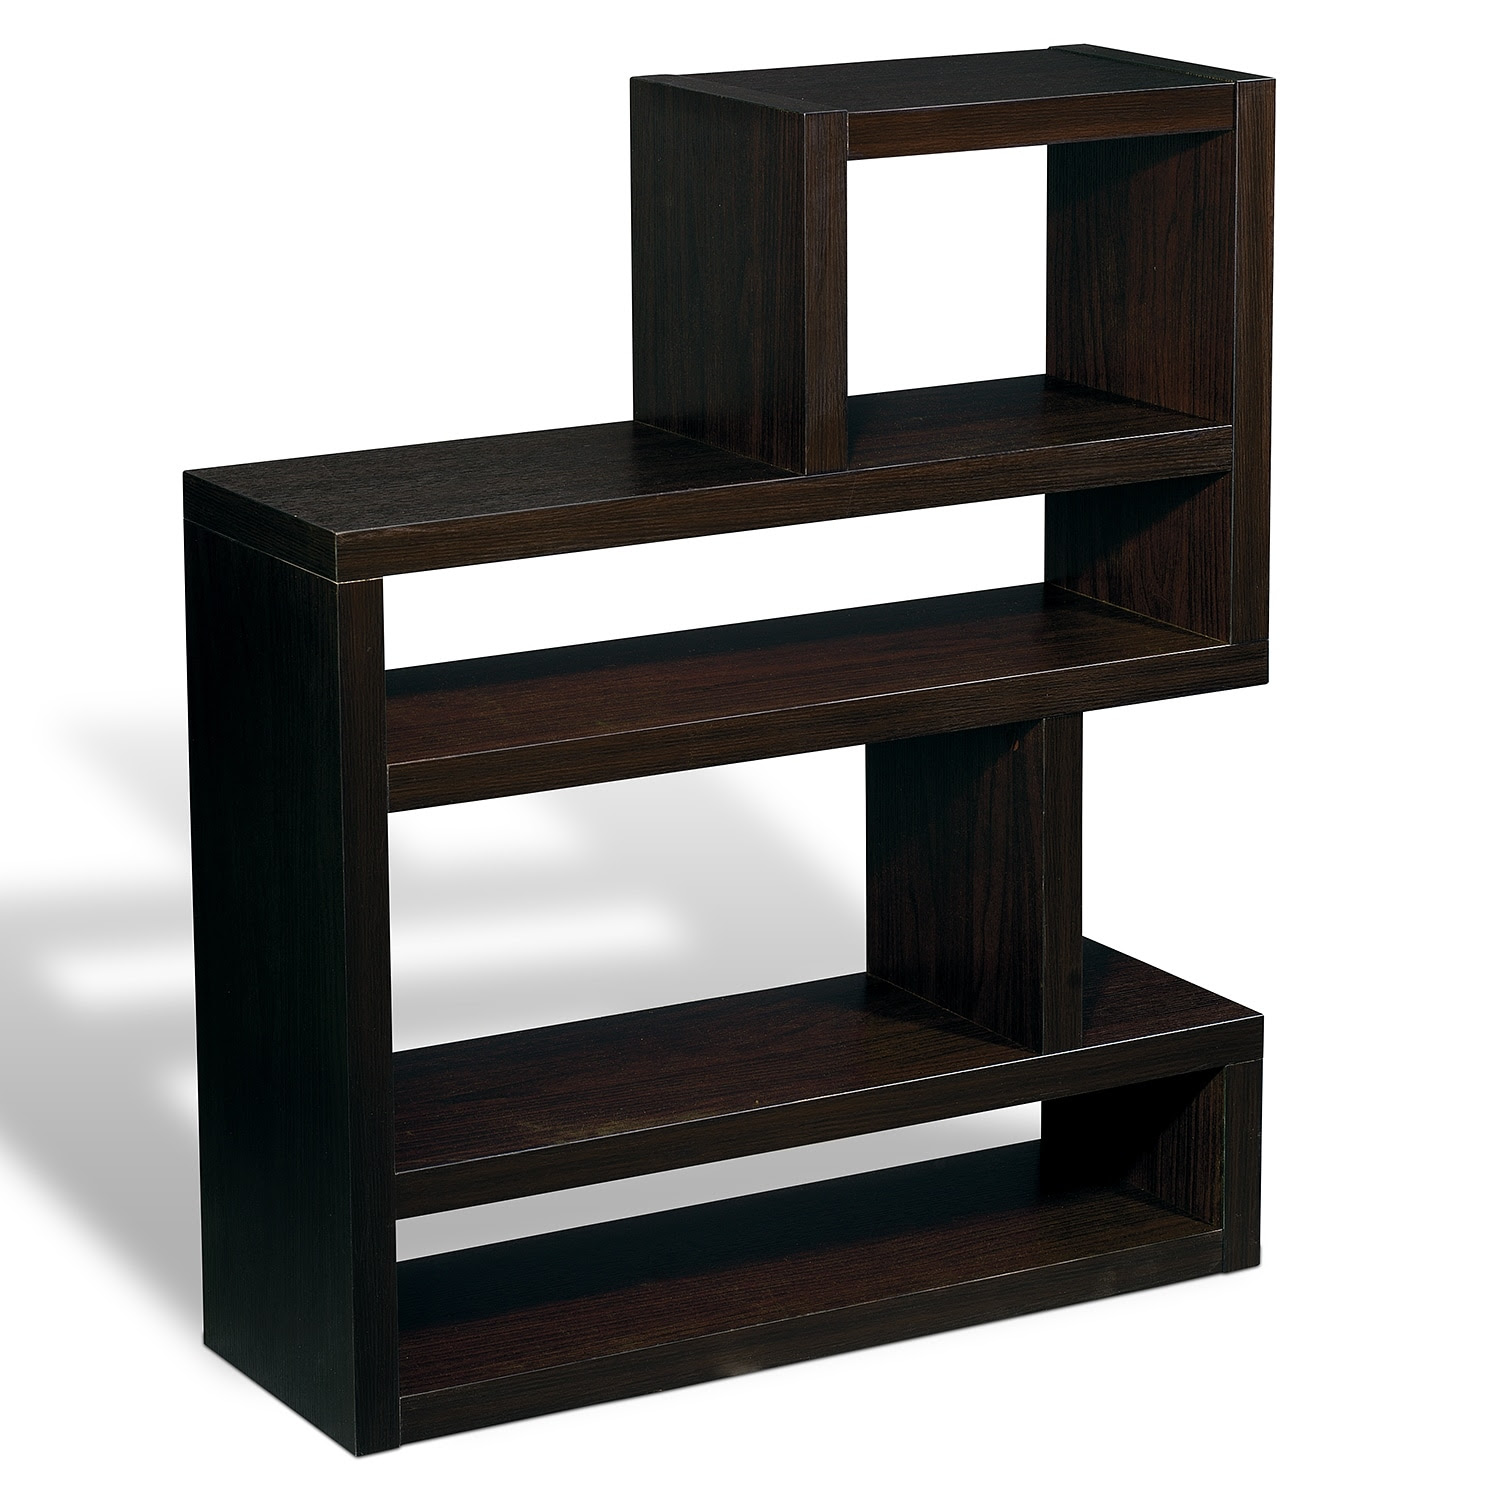 Magma Accent Pieces Small Bookcase - Value City Furniture